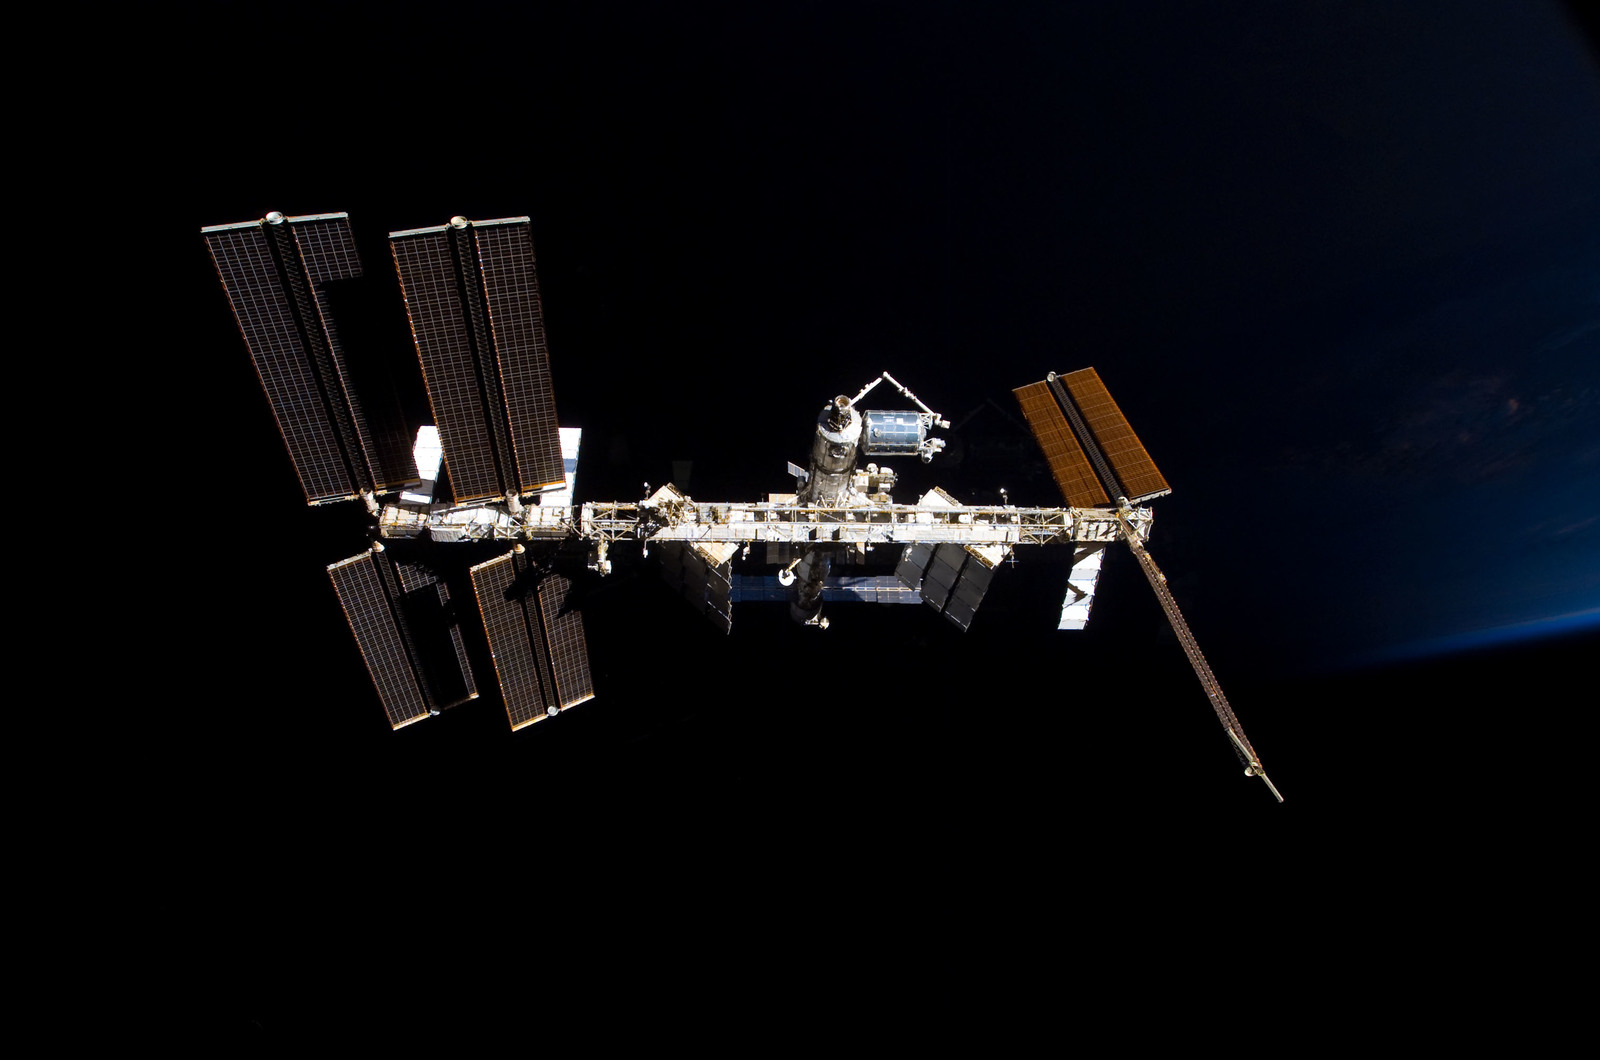 S122E009860 - STS-122 - View of ISS after STS-122 Undocking